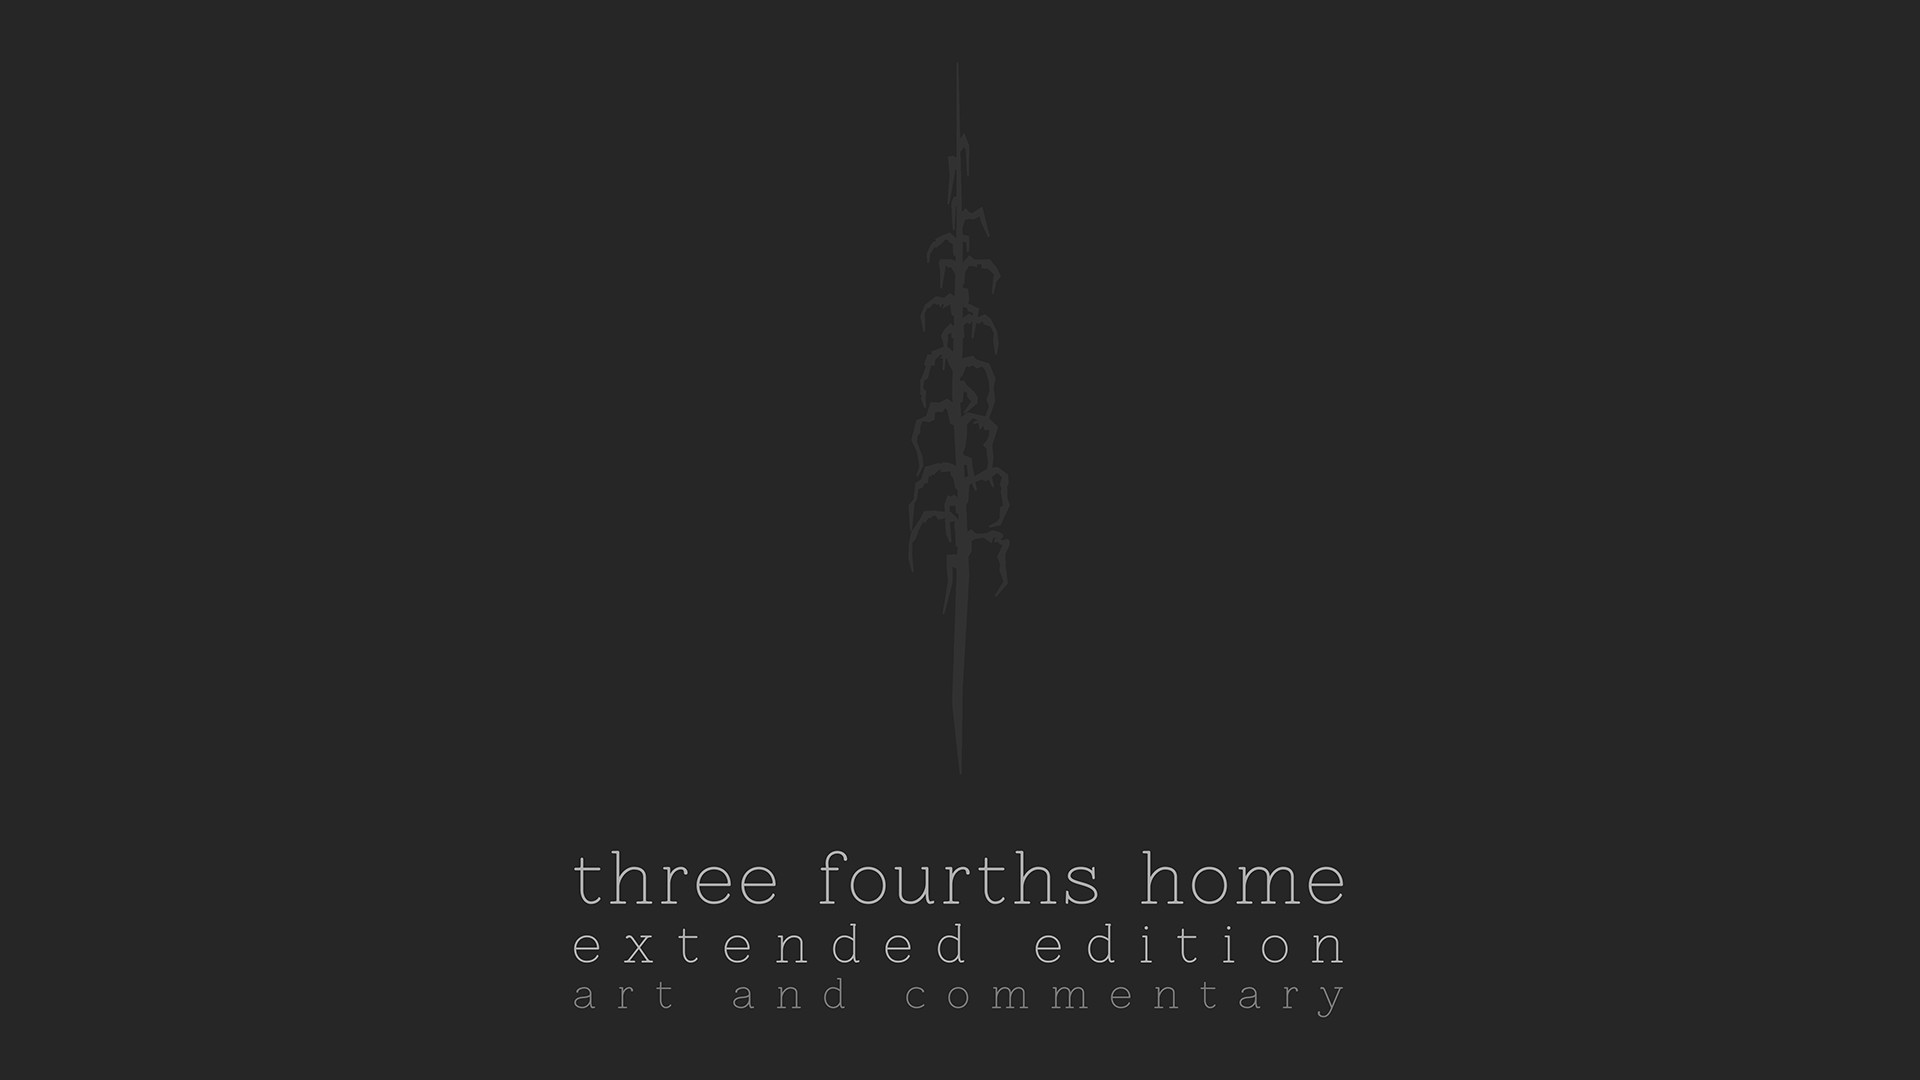 Three Fourths Home: Extended Edition - Art Book & Soundtrack screenshot